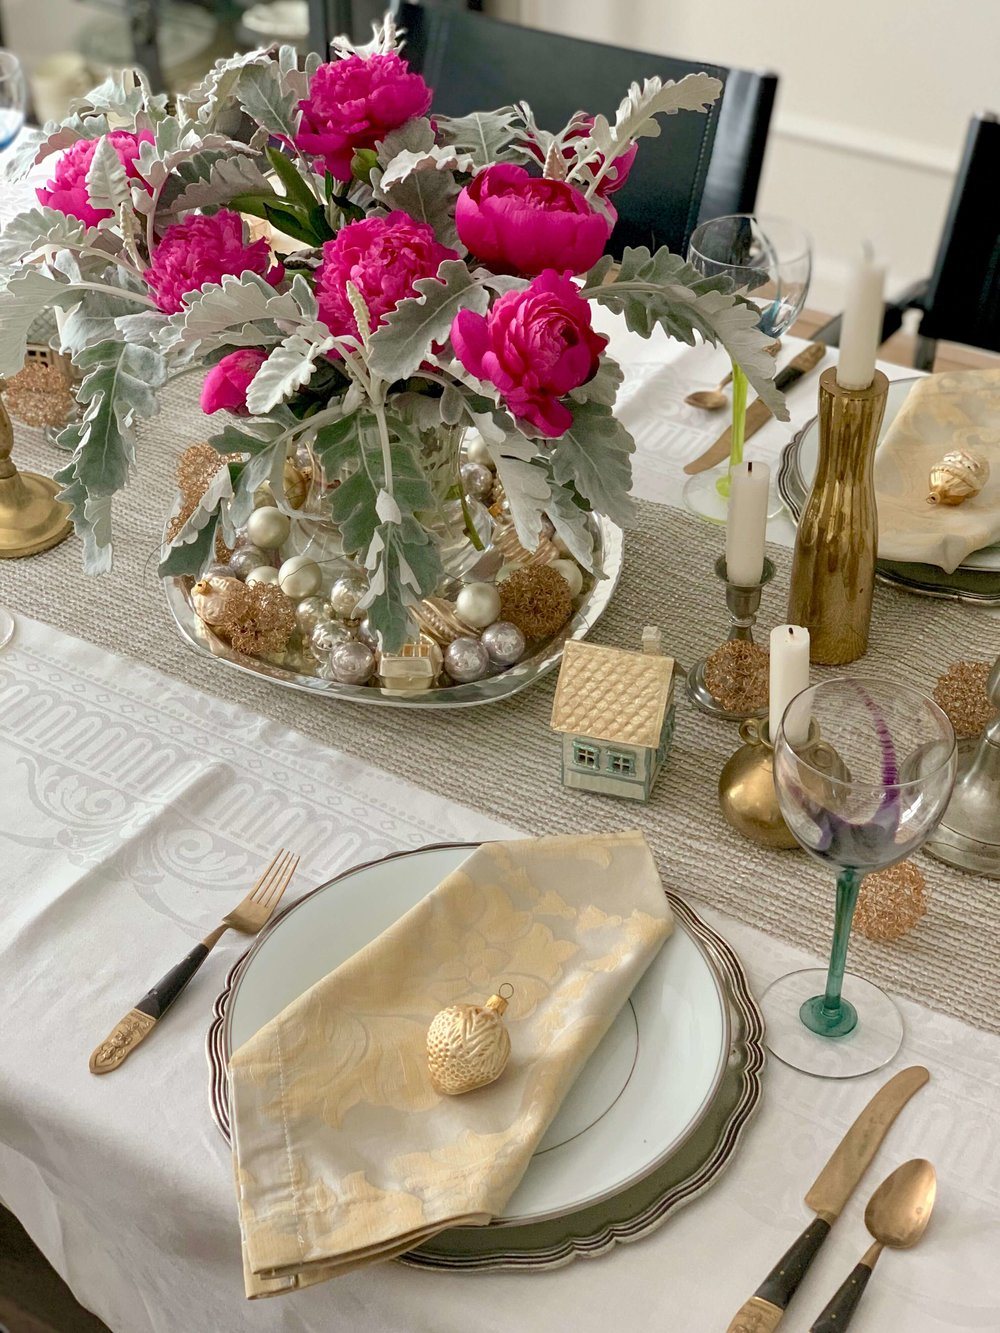 Christmas home tour dining room tabletop | Carla Aston, Designer | #Christmastabletop #Christmashometour #holidayhometour #tablesetting